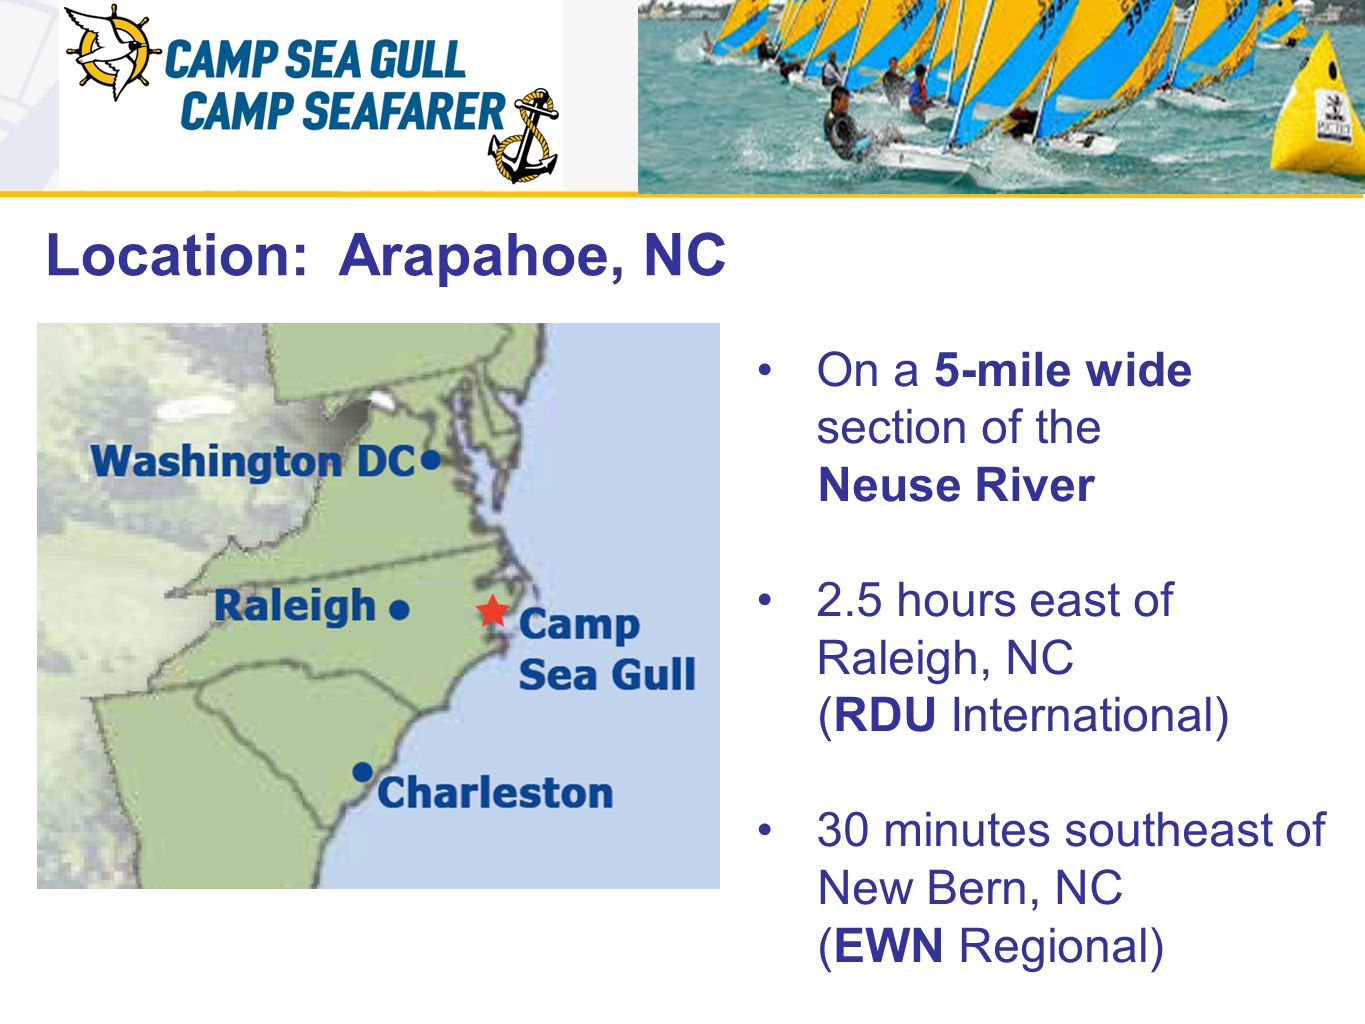 Racing Area 5-mile wide section of the Neuse River 100 boats on the line at 2012 Opti SE Champs